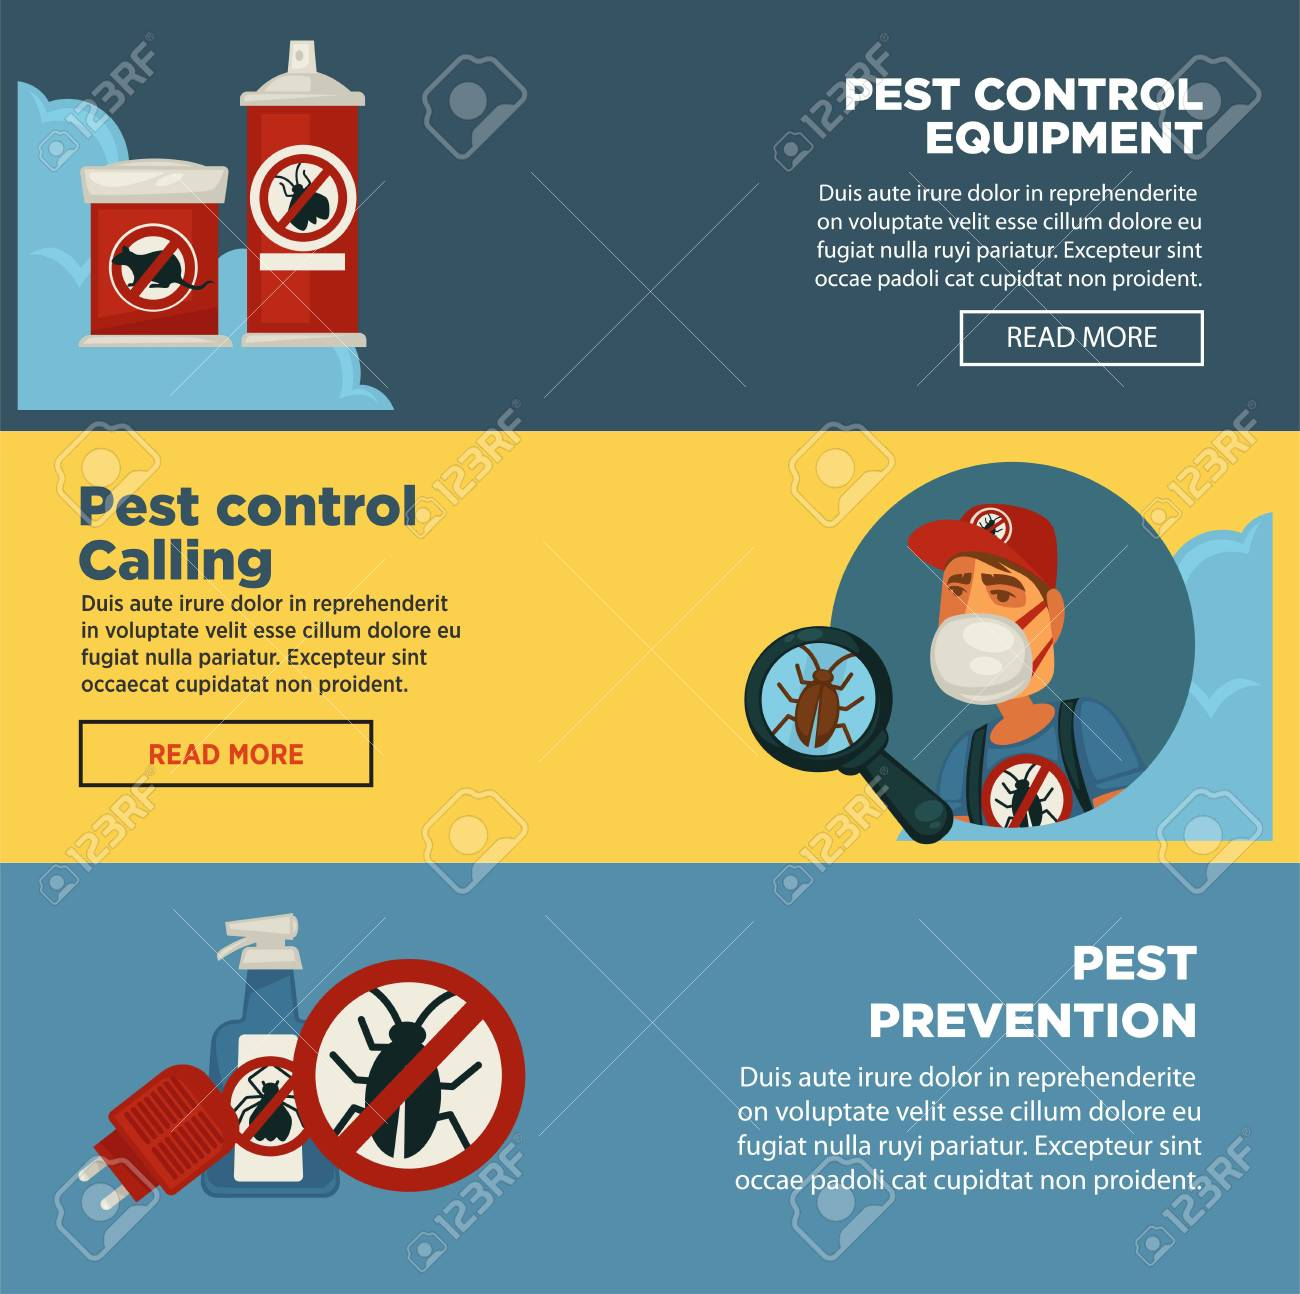 extermination pest control service banners template design of sanitary domestic exterminate disinfection equipment vector disinfectant